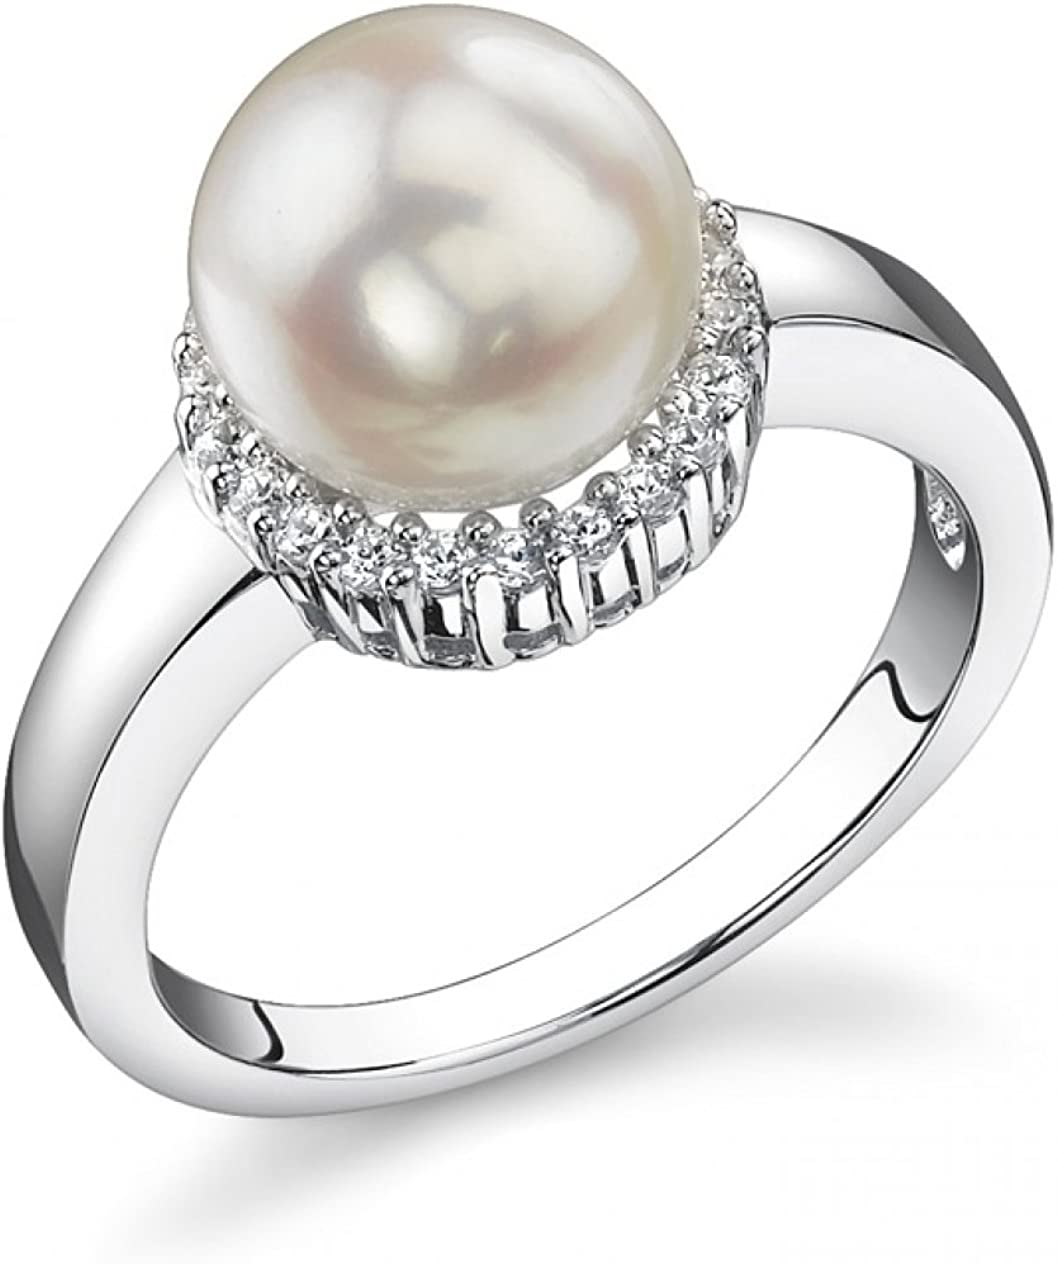 Max 59% OFF THE PEARL SOURCE 8-8.5mm Genuine Saltwater Cheap bargain White Japanese Akoya